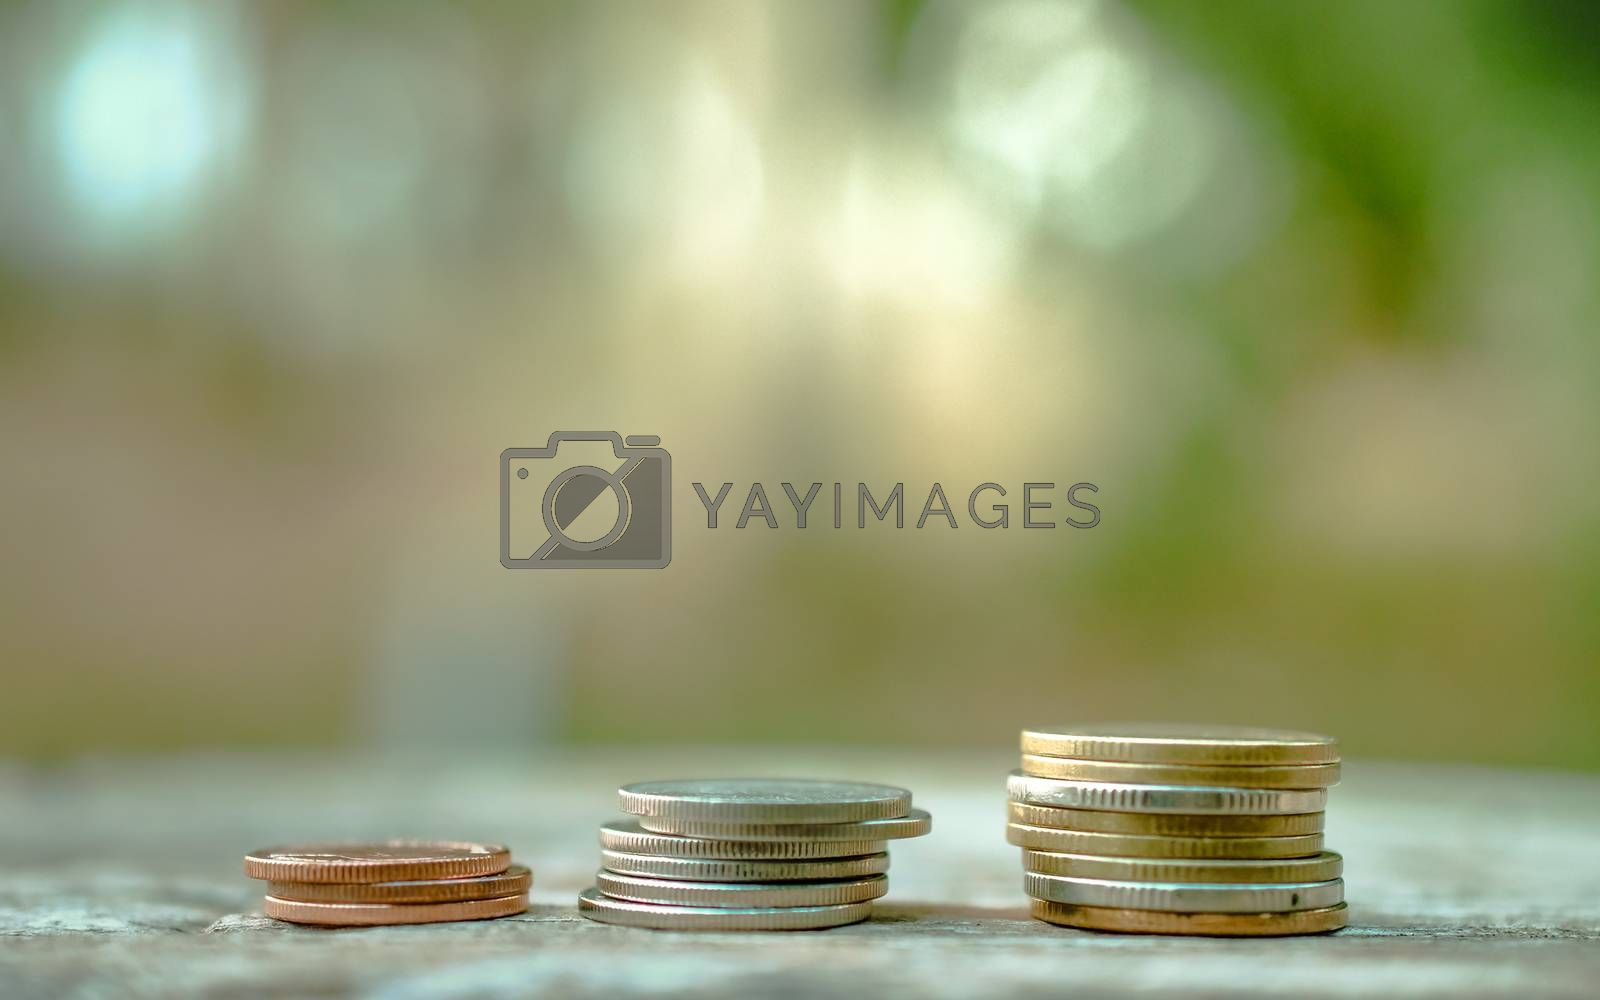 money coins strack keep by step close up